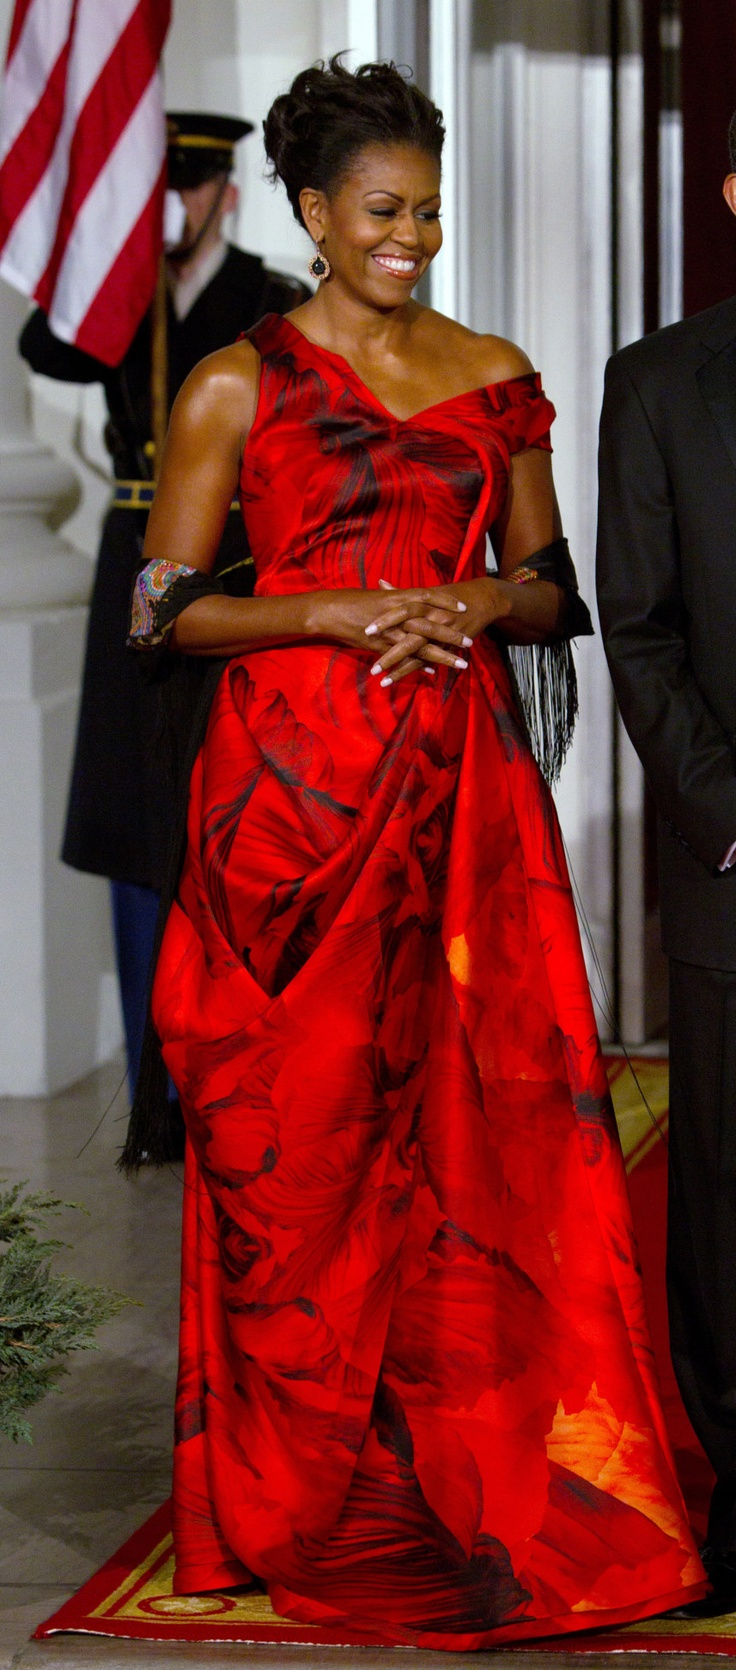 Image detail for -First lady Michelle Obama waits to greet Chinese President Hu Jintao before a state dinner at the White House in Washington.